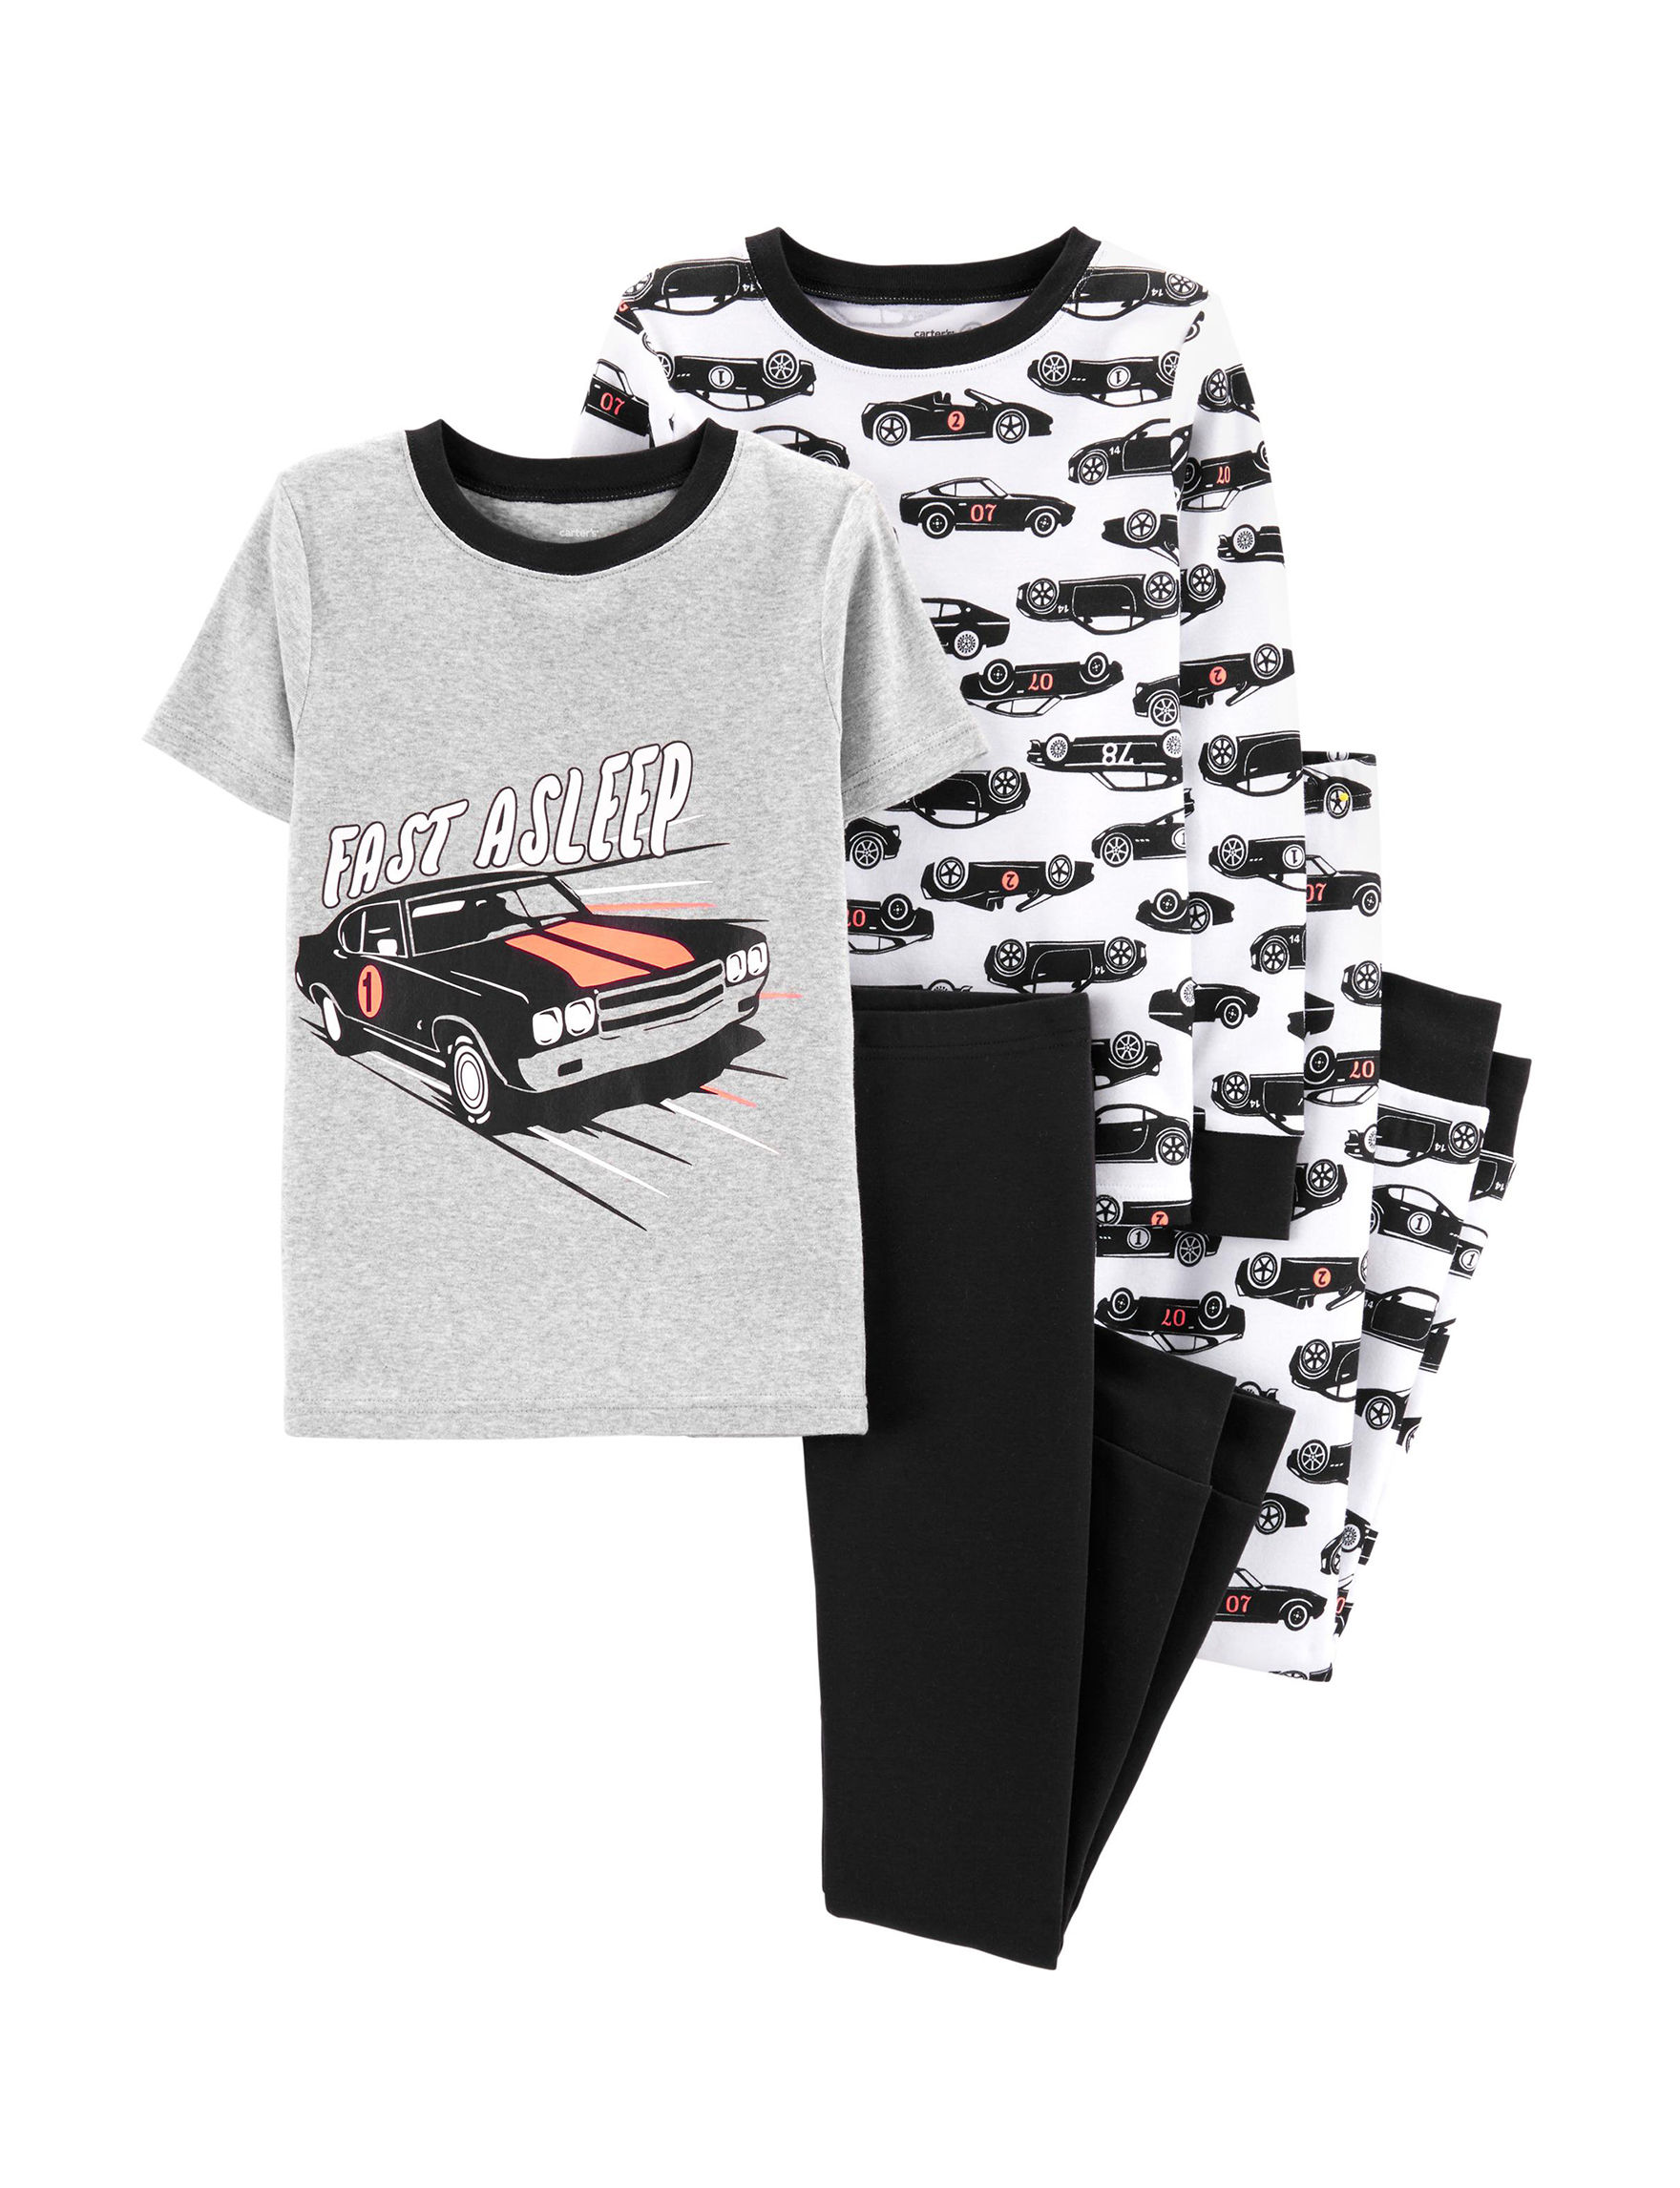 Carter's Grey / Black Multi Pajama Sets